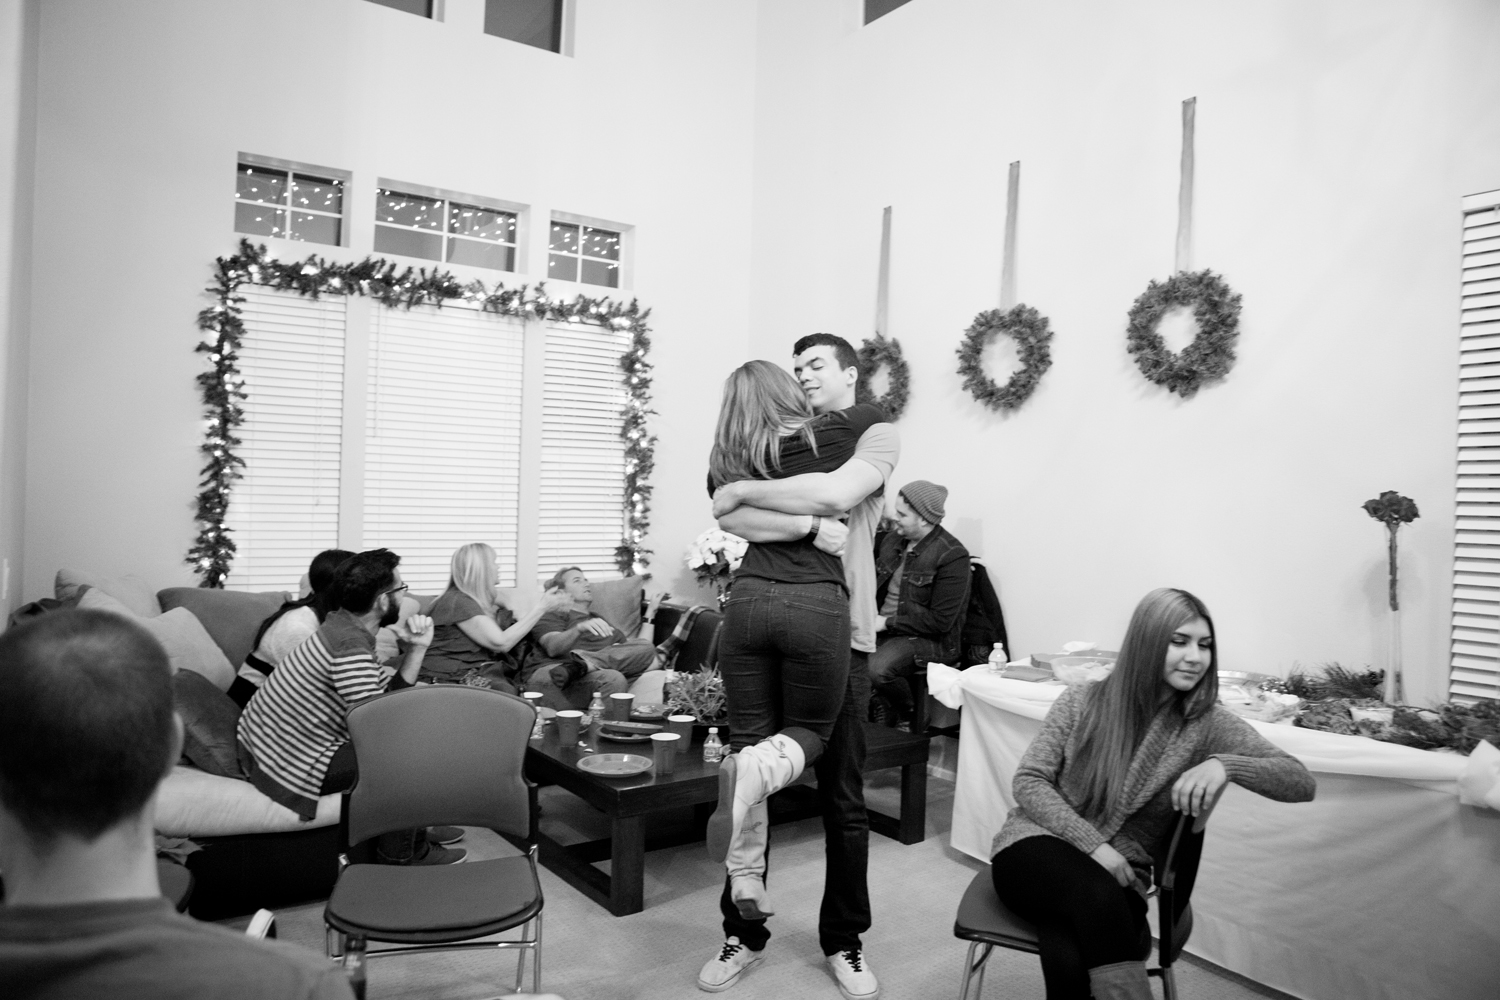 engagement-video-ideas_cute-marriage-proposal-ideas_40